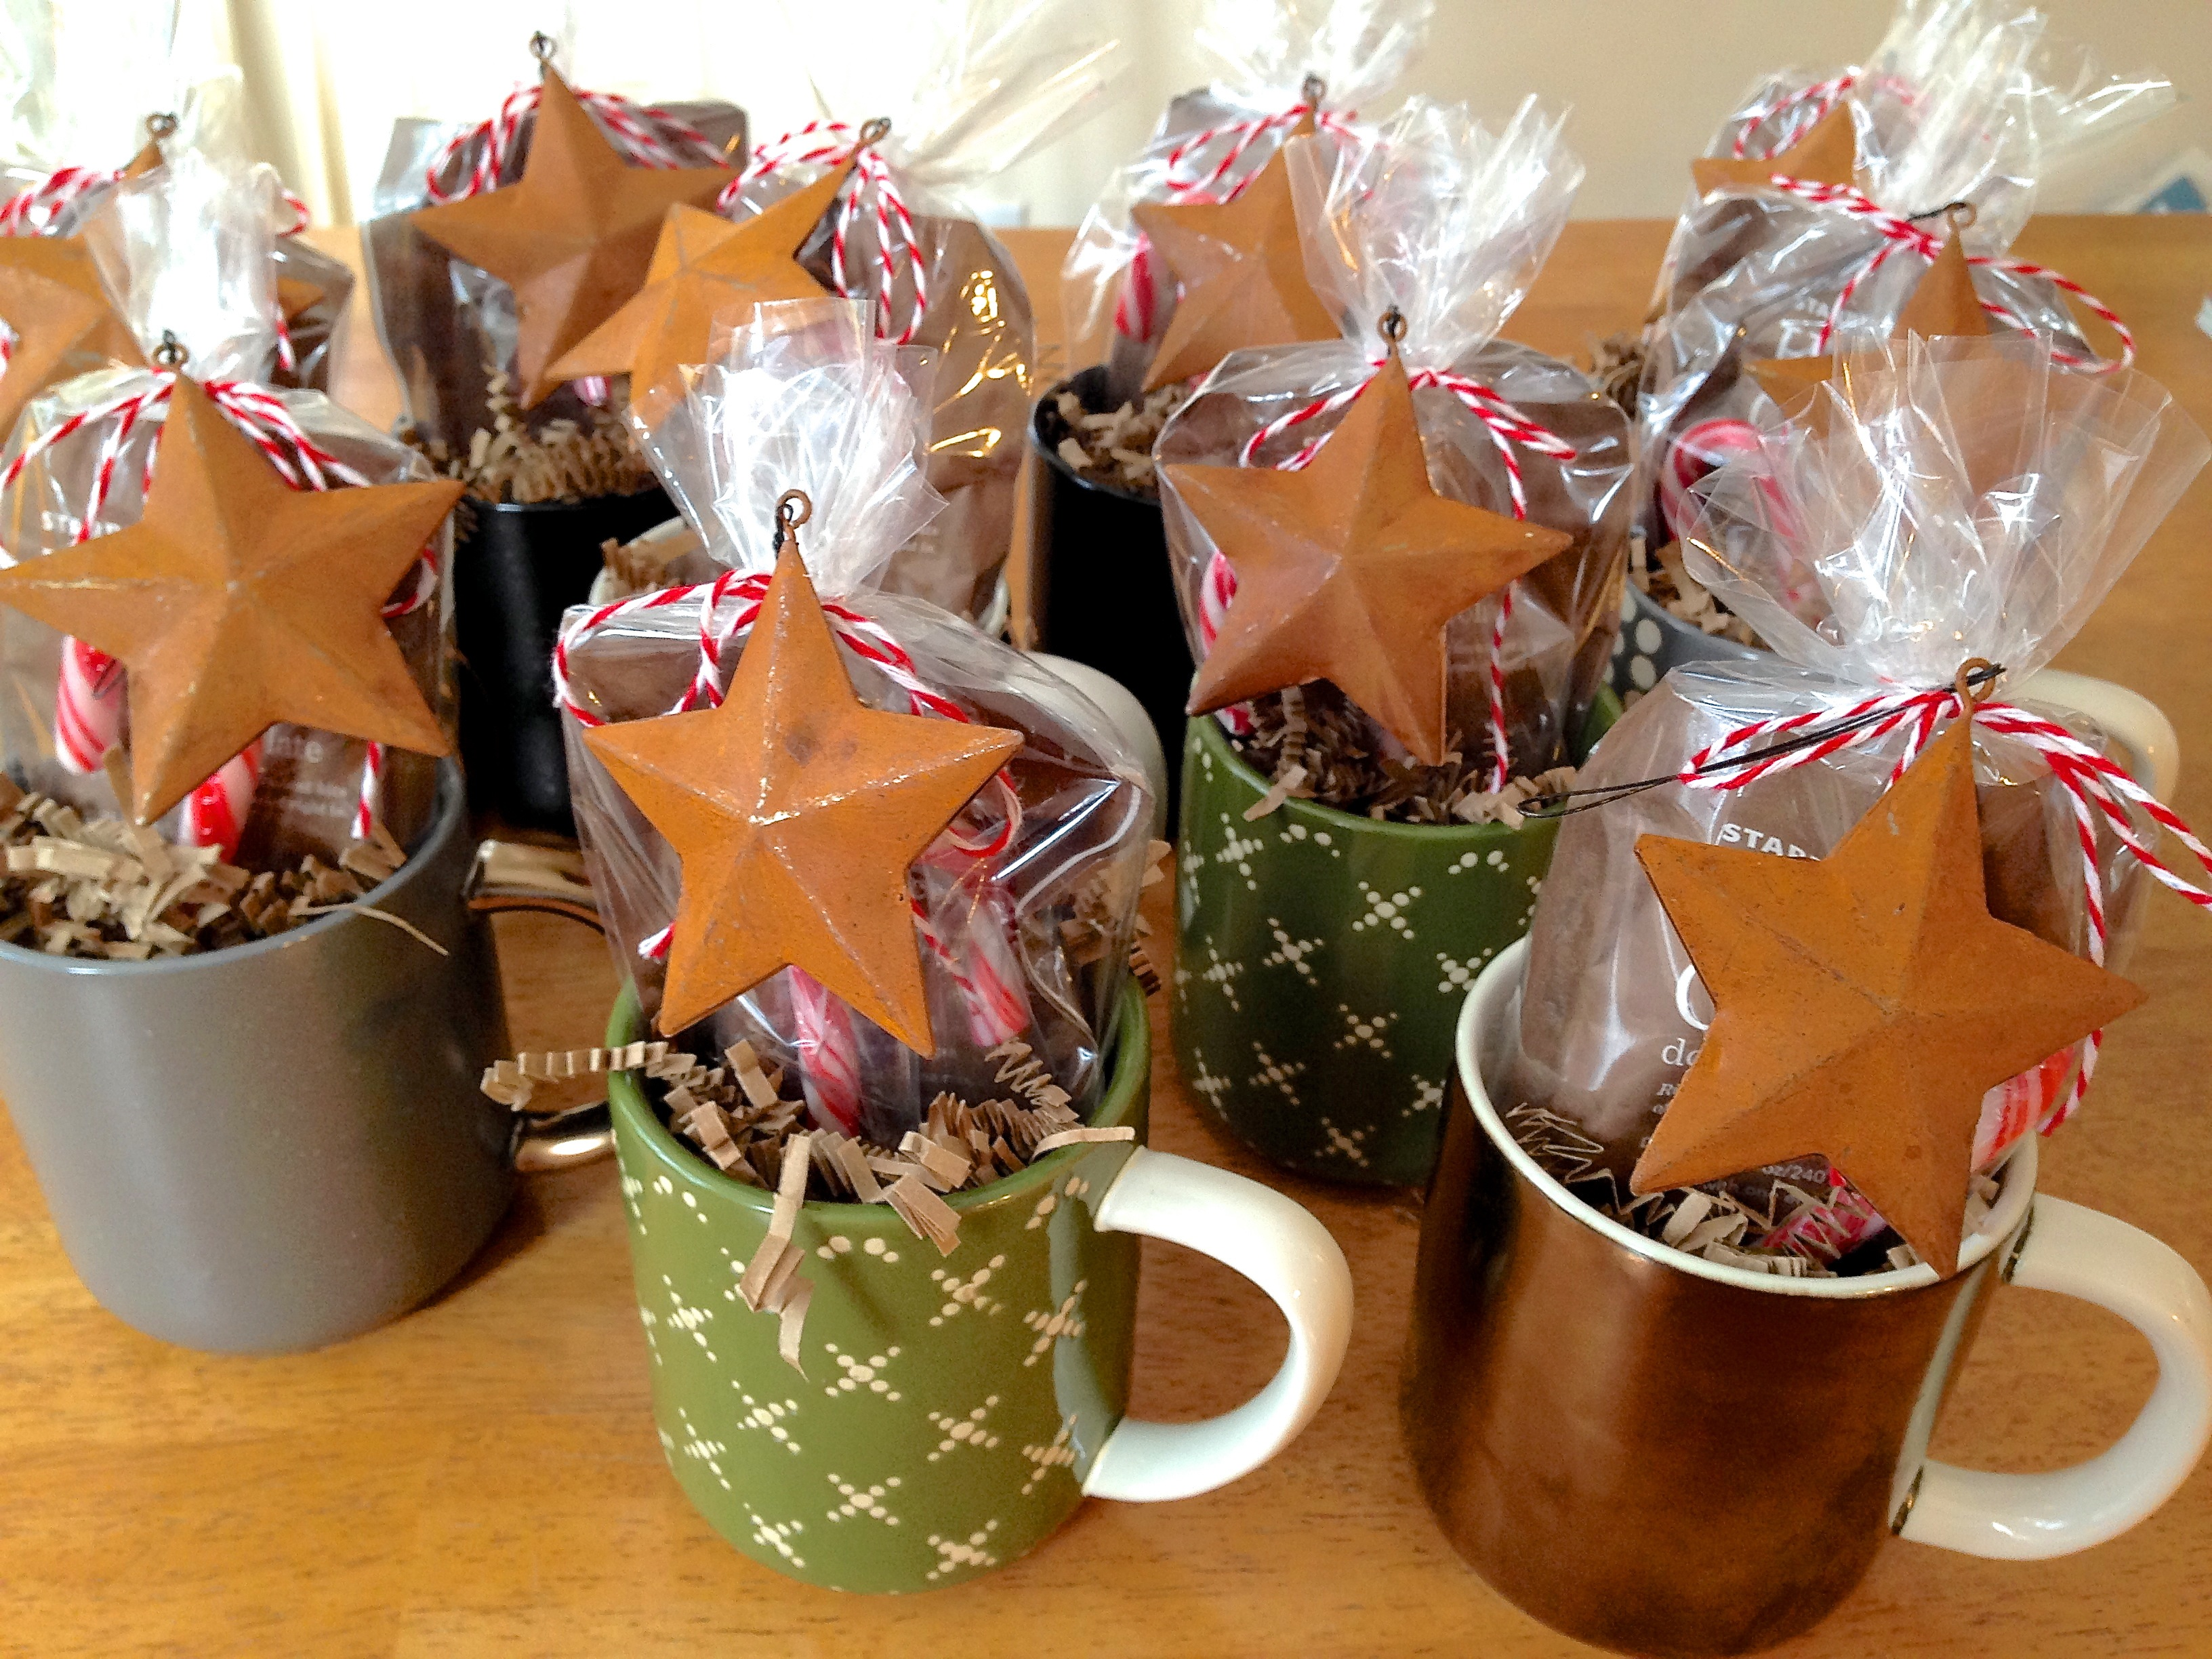 12 Days Of Projects Day 9 Cocoa Gift Mugs P S Bonjour